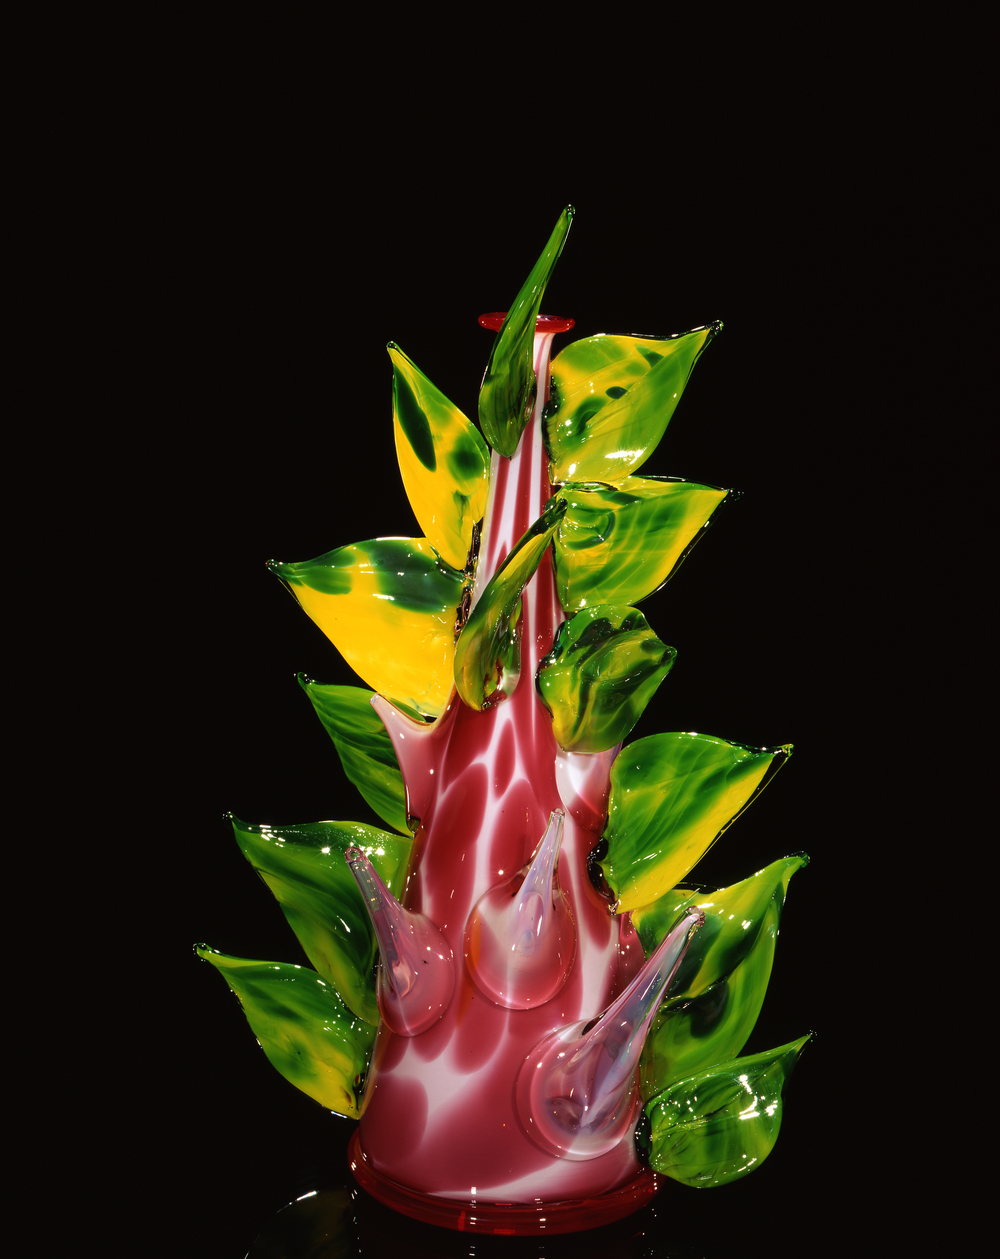 Dale Chihuly,  Strawberry Marbled Piccolo Venetian with Emerald Prunts  (1997, glass, 13 1/2 x 6 1/2 x 6 1/2 inches)